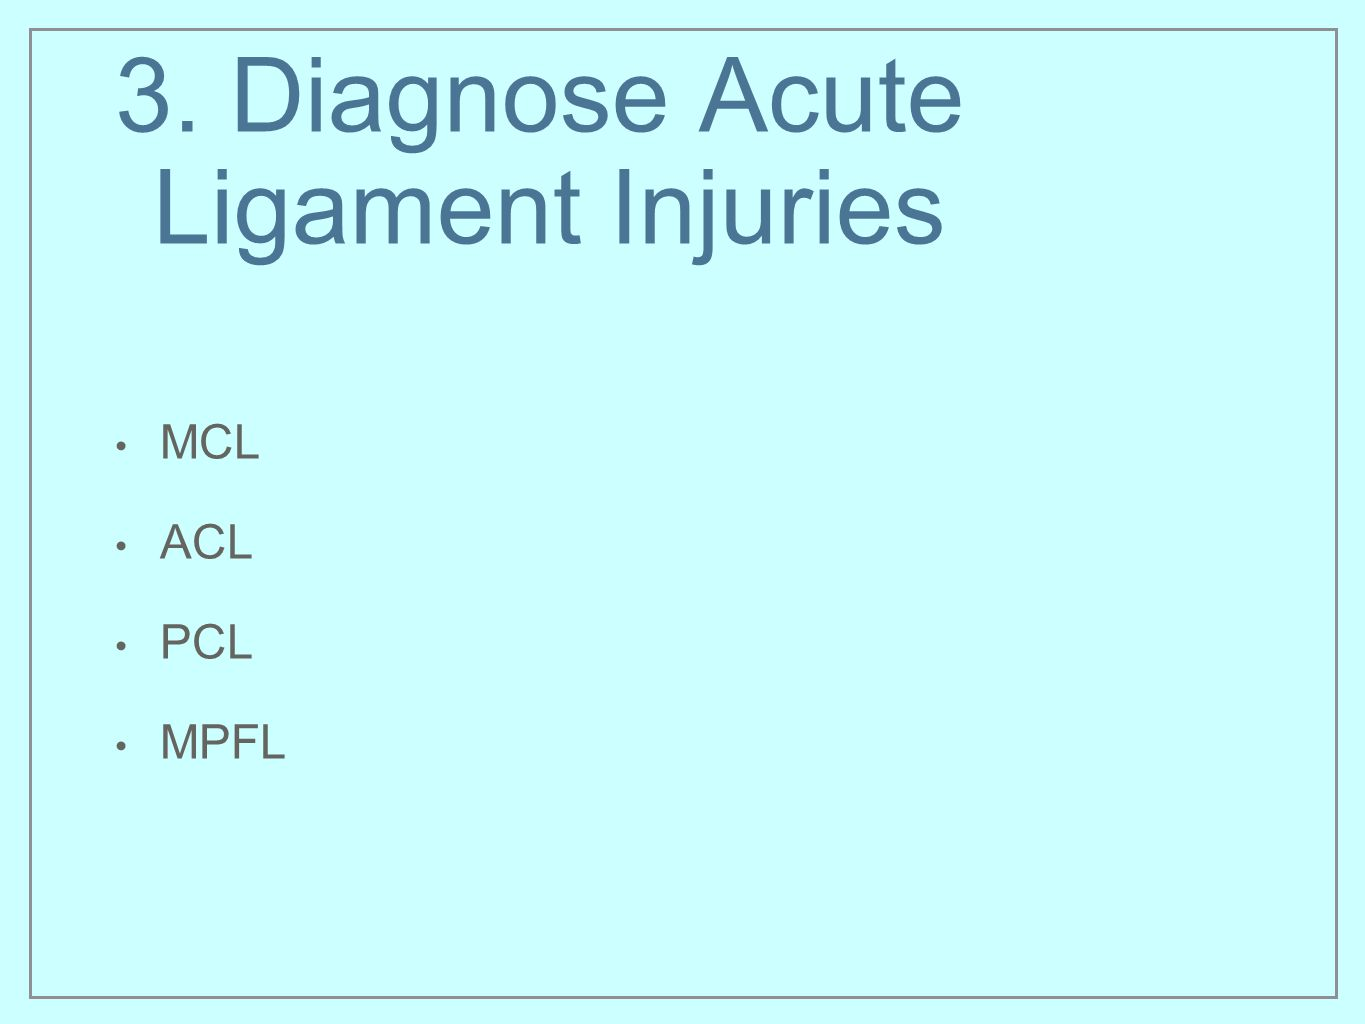 3. Diagnose Acute Ligament Injuries